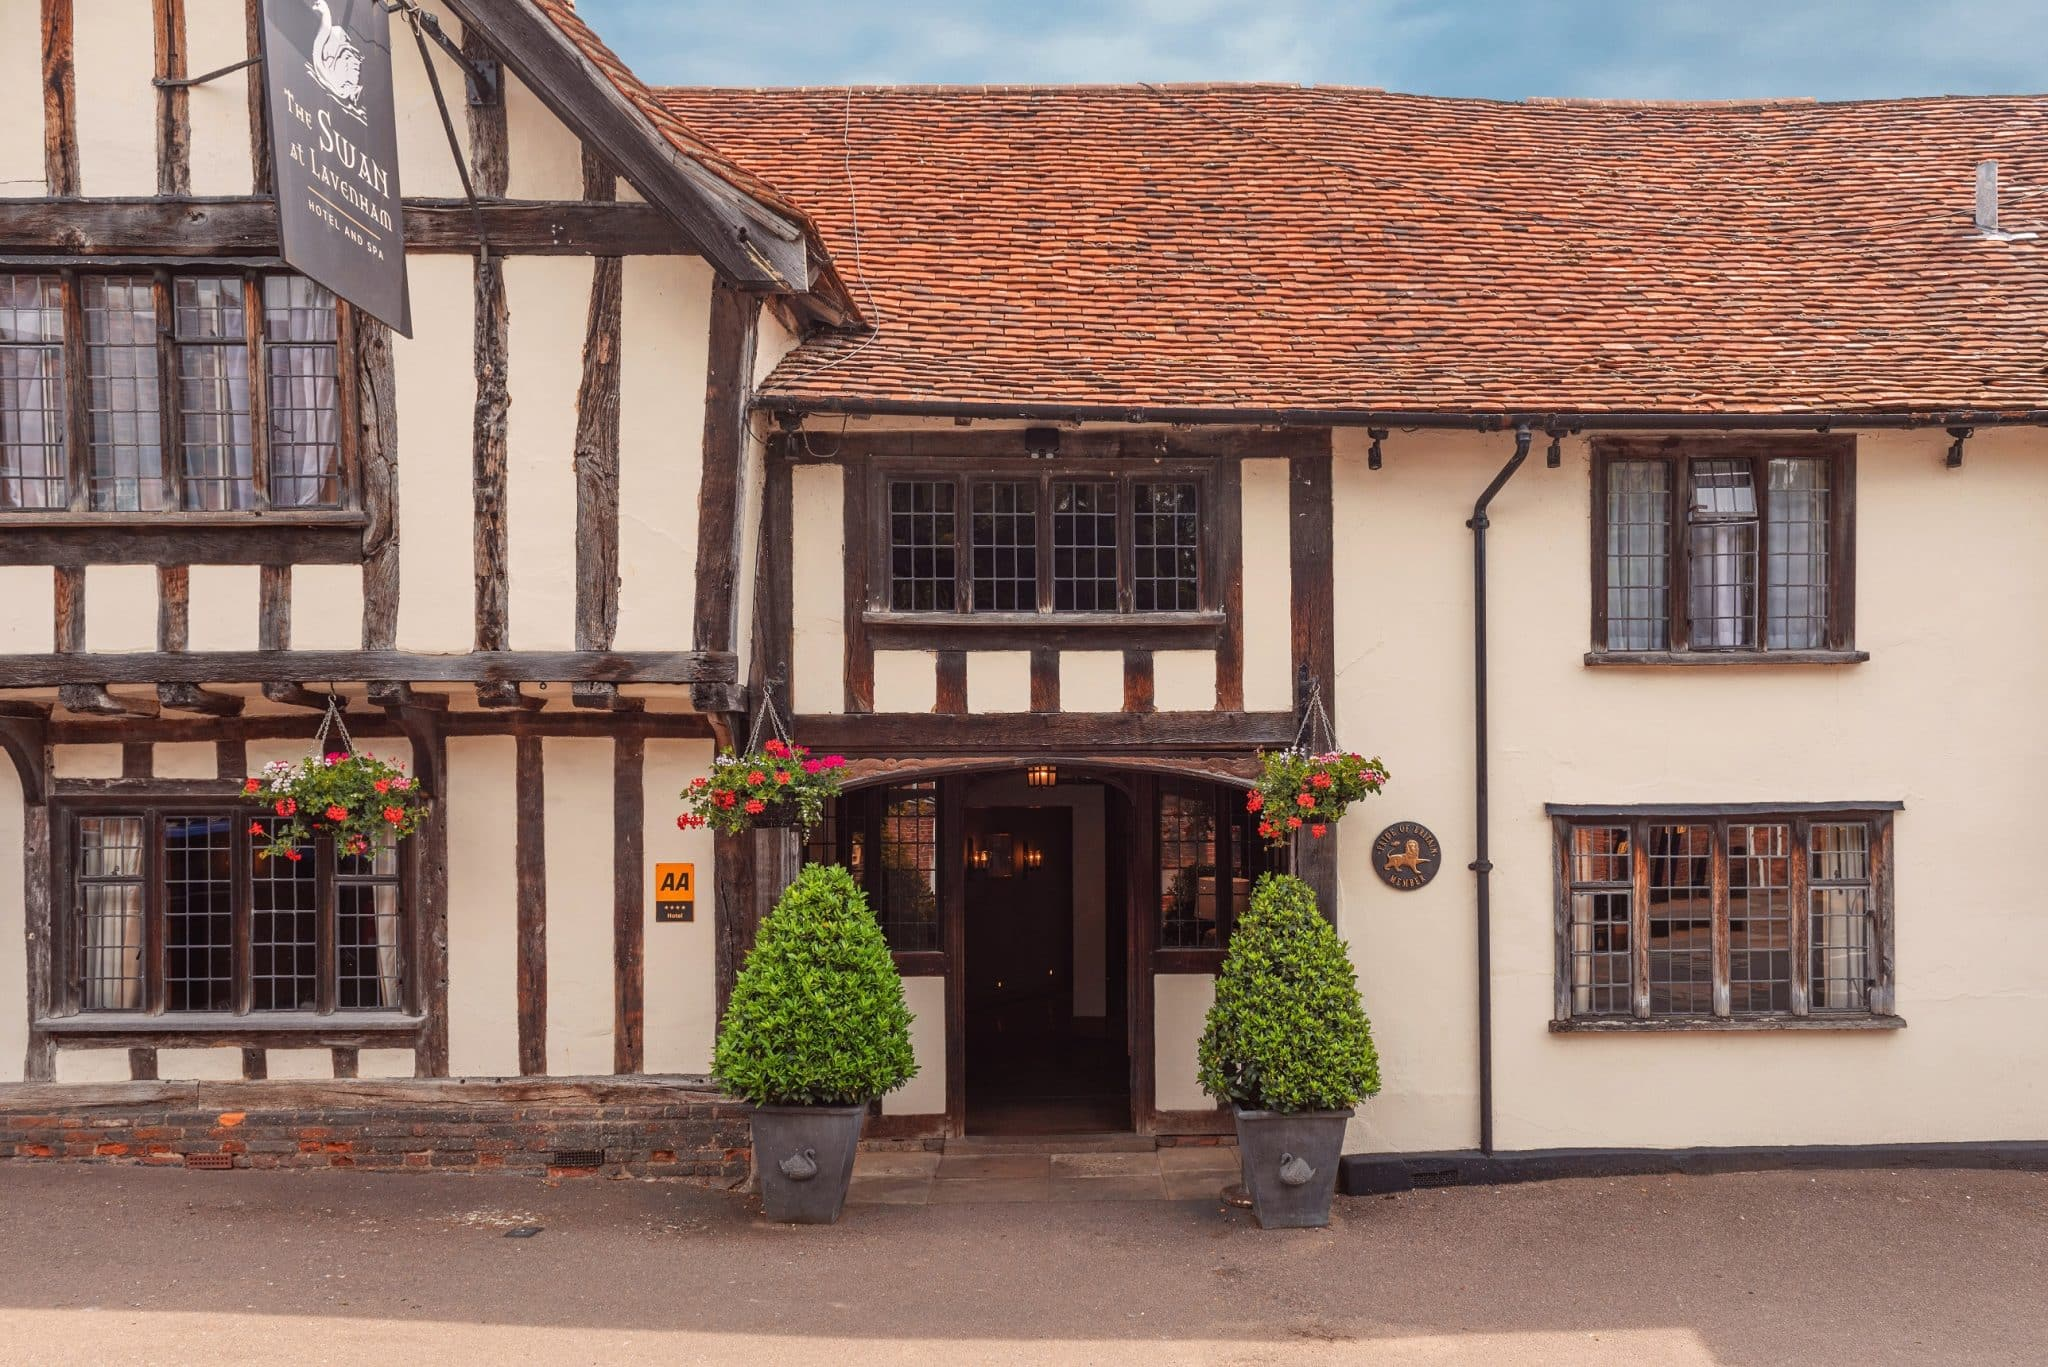 The Hotel Folk re-opening venues across Suffolk from Monday